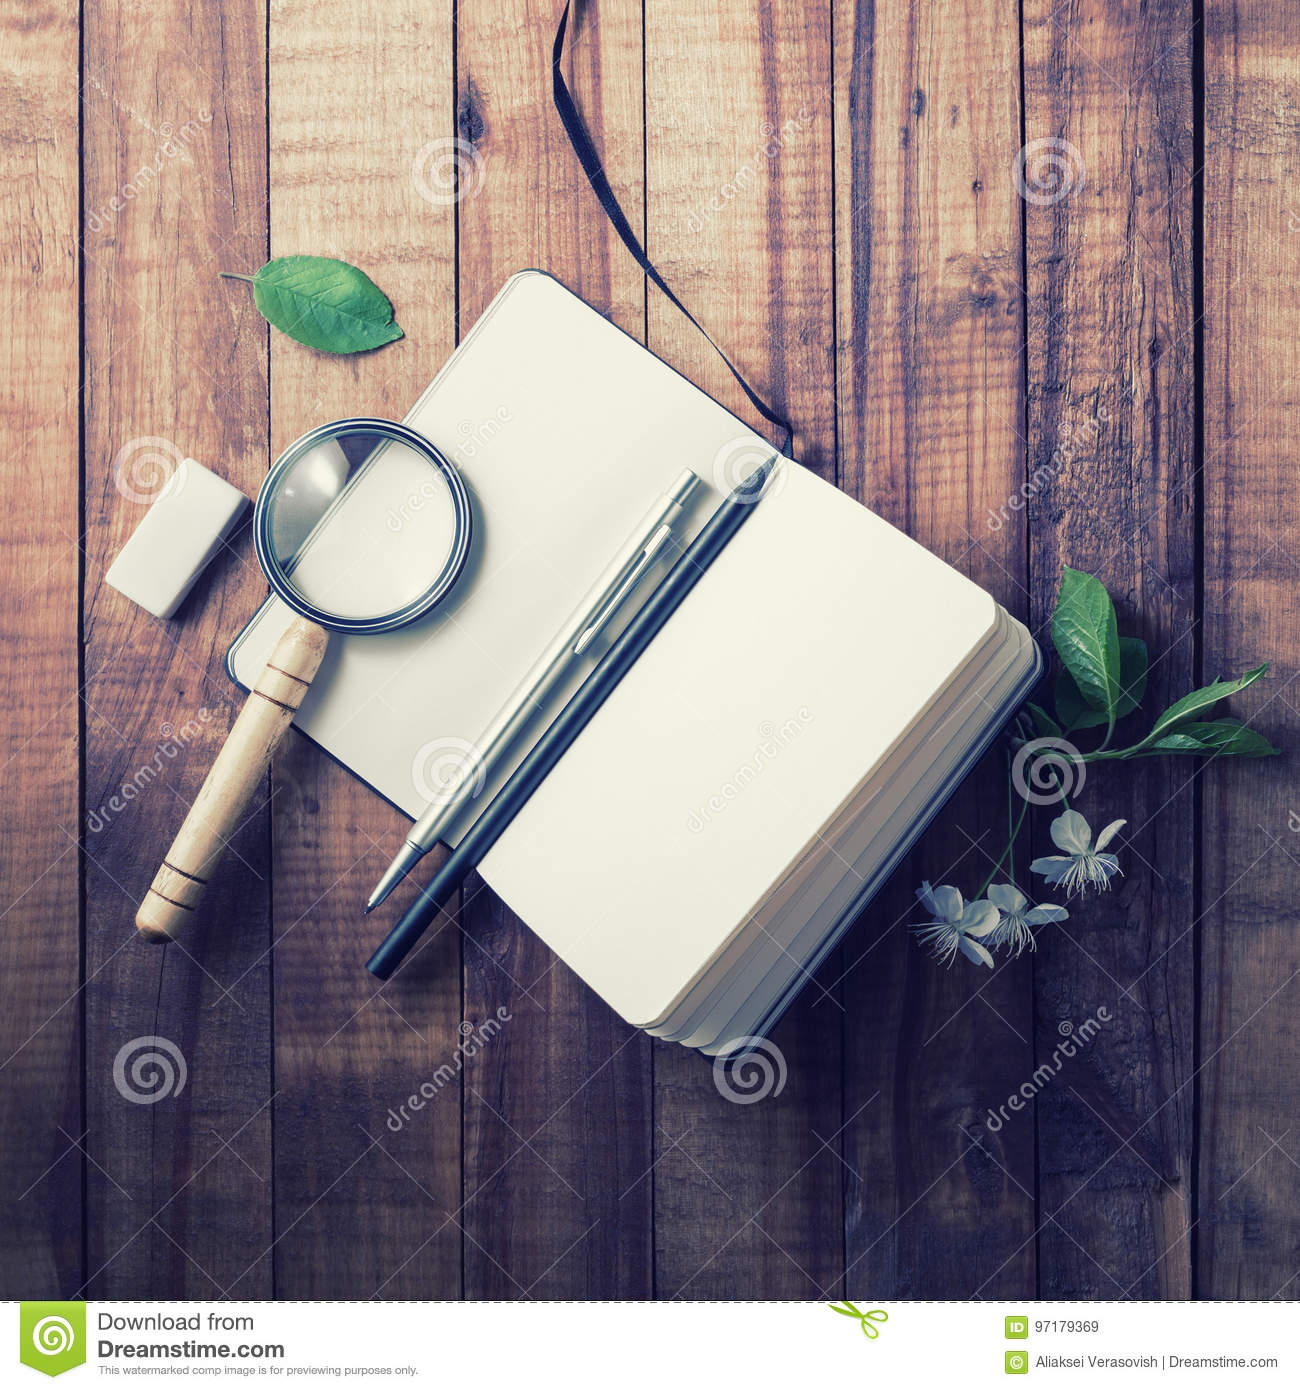 Notebook and stationery